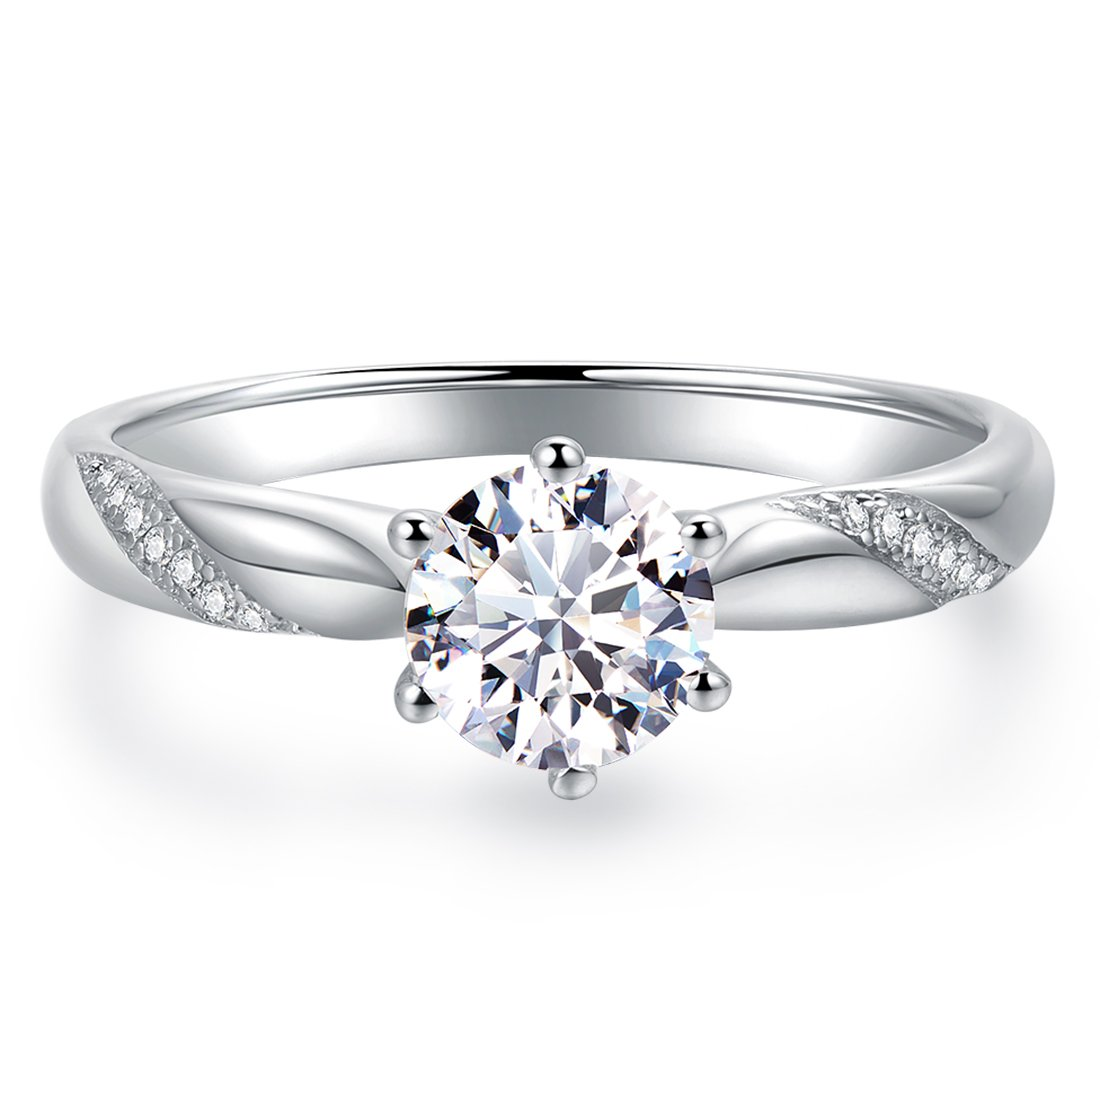 Stunning Flame Solitaire Engagement Ring Cubic Zirconia CZ in White Gold Plated Sterling Silver for Women   Excellent Cut, D Color, FL Clarity & Exquisite Polish   Size 7 by Raneecoco